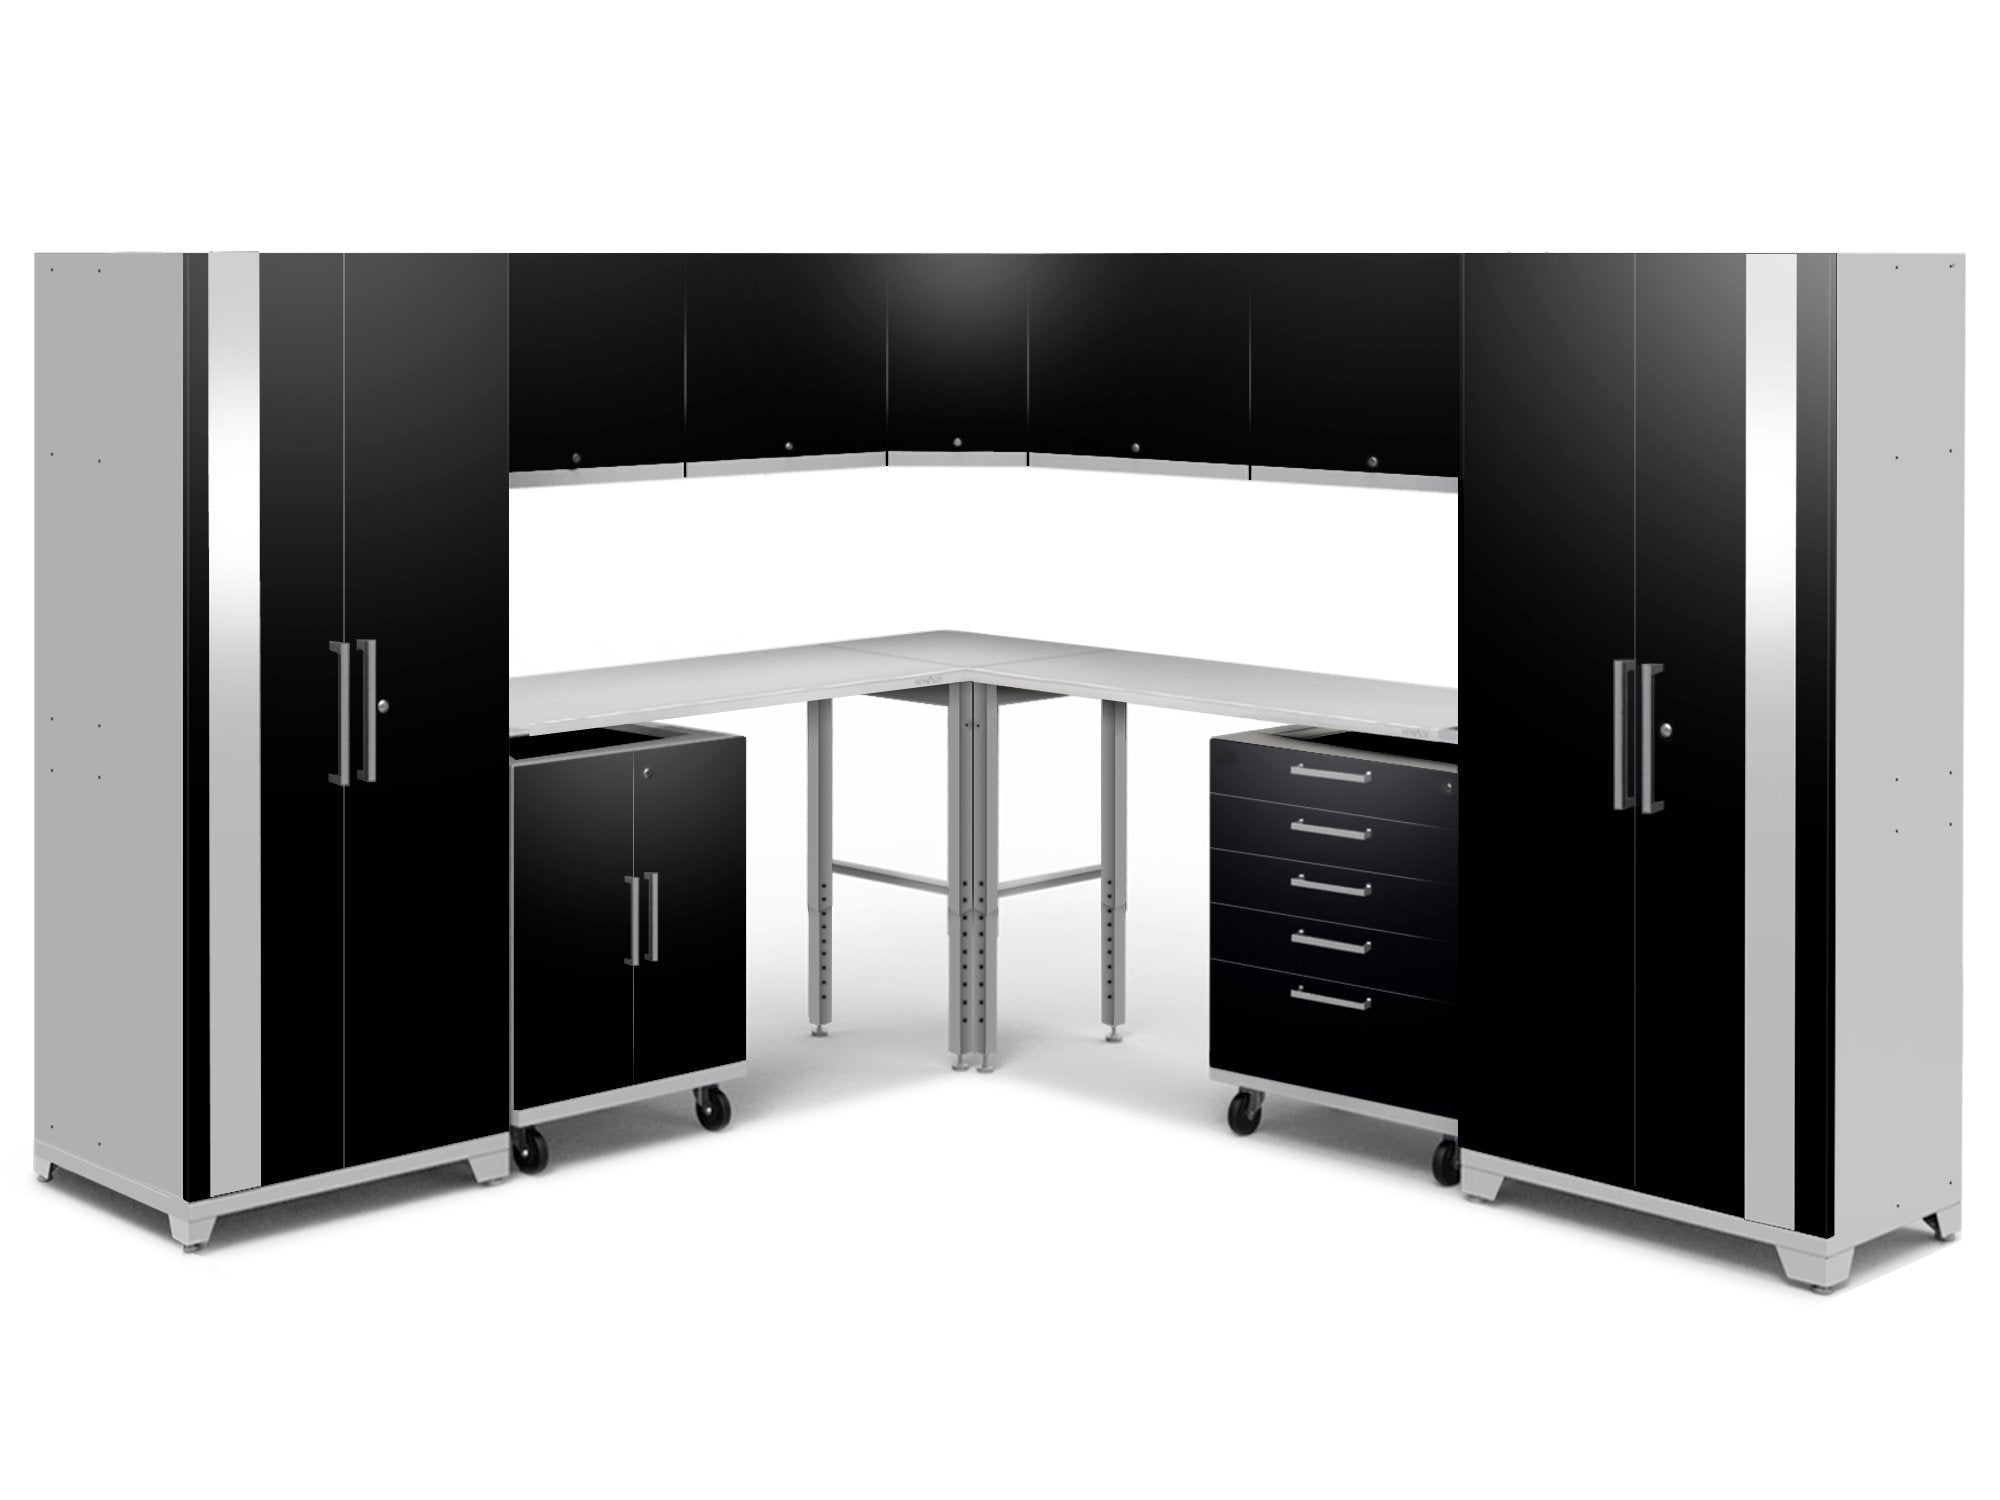 NewAge Performance Plus 2.0 Black 12 Piece Set - Stainless Steel Worktop - 53175